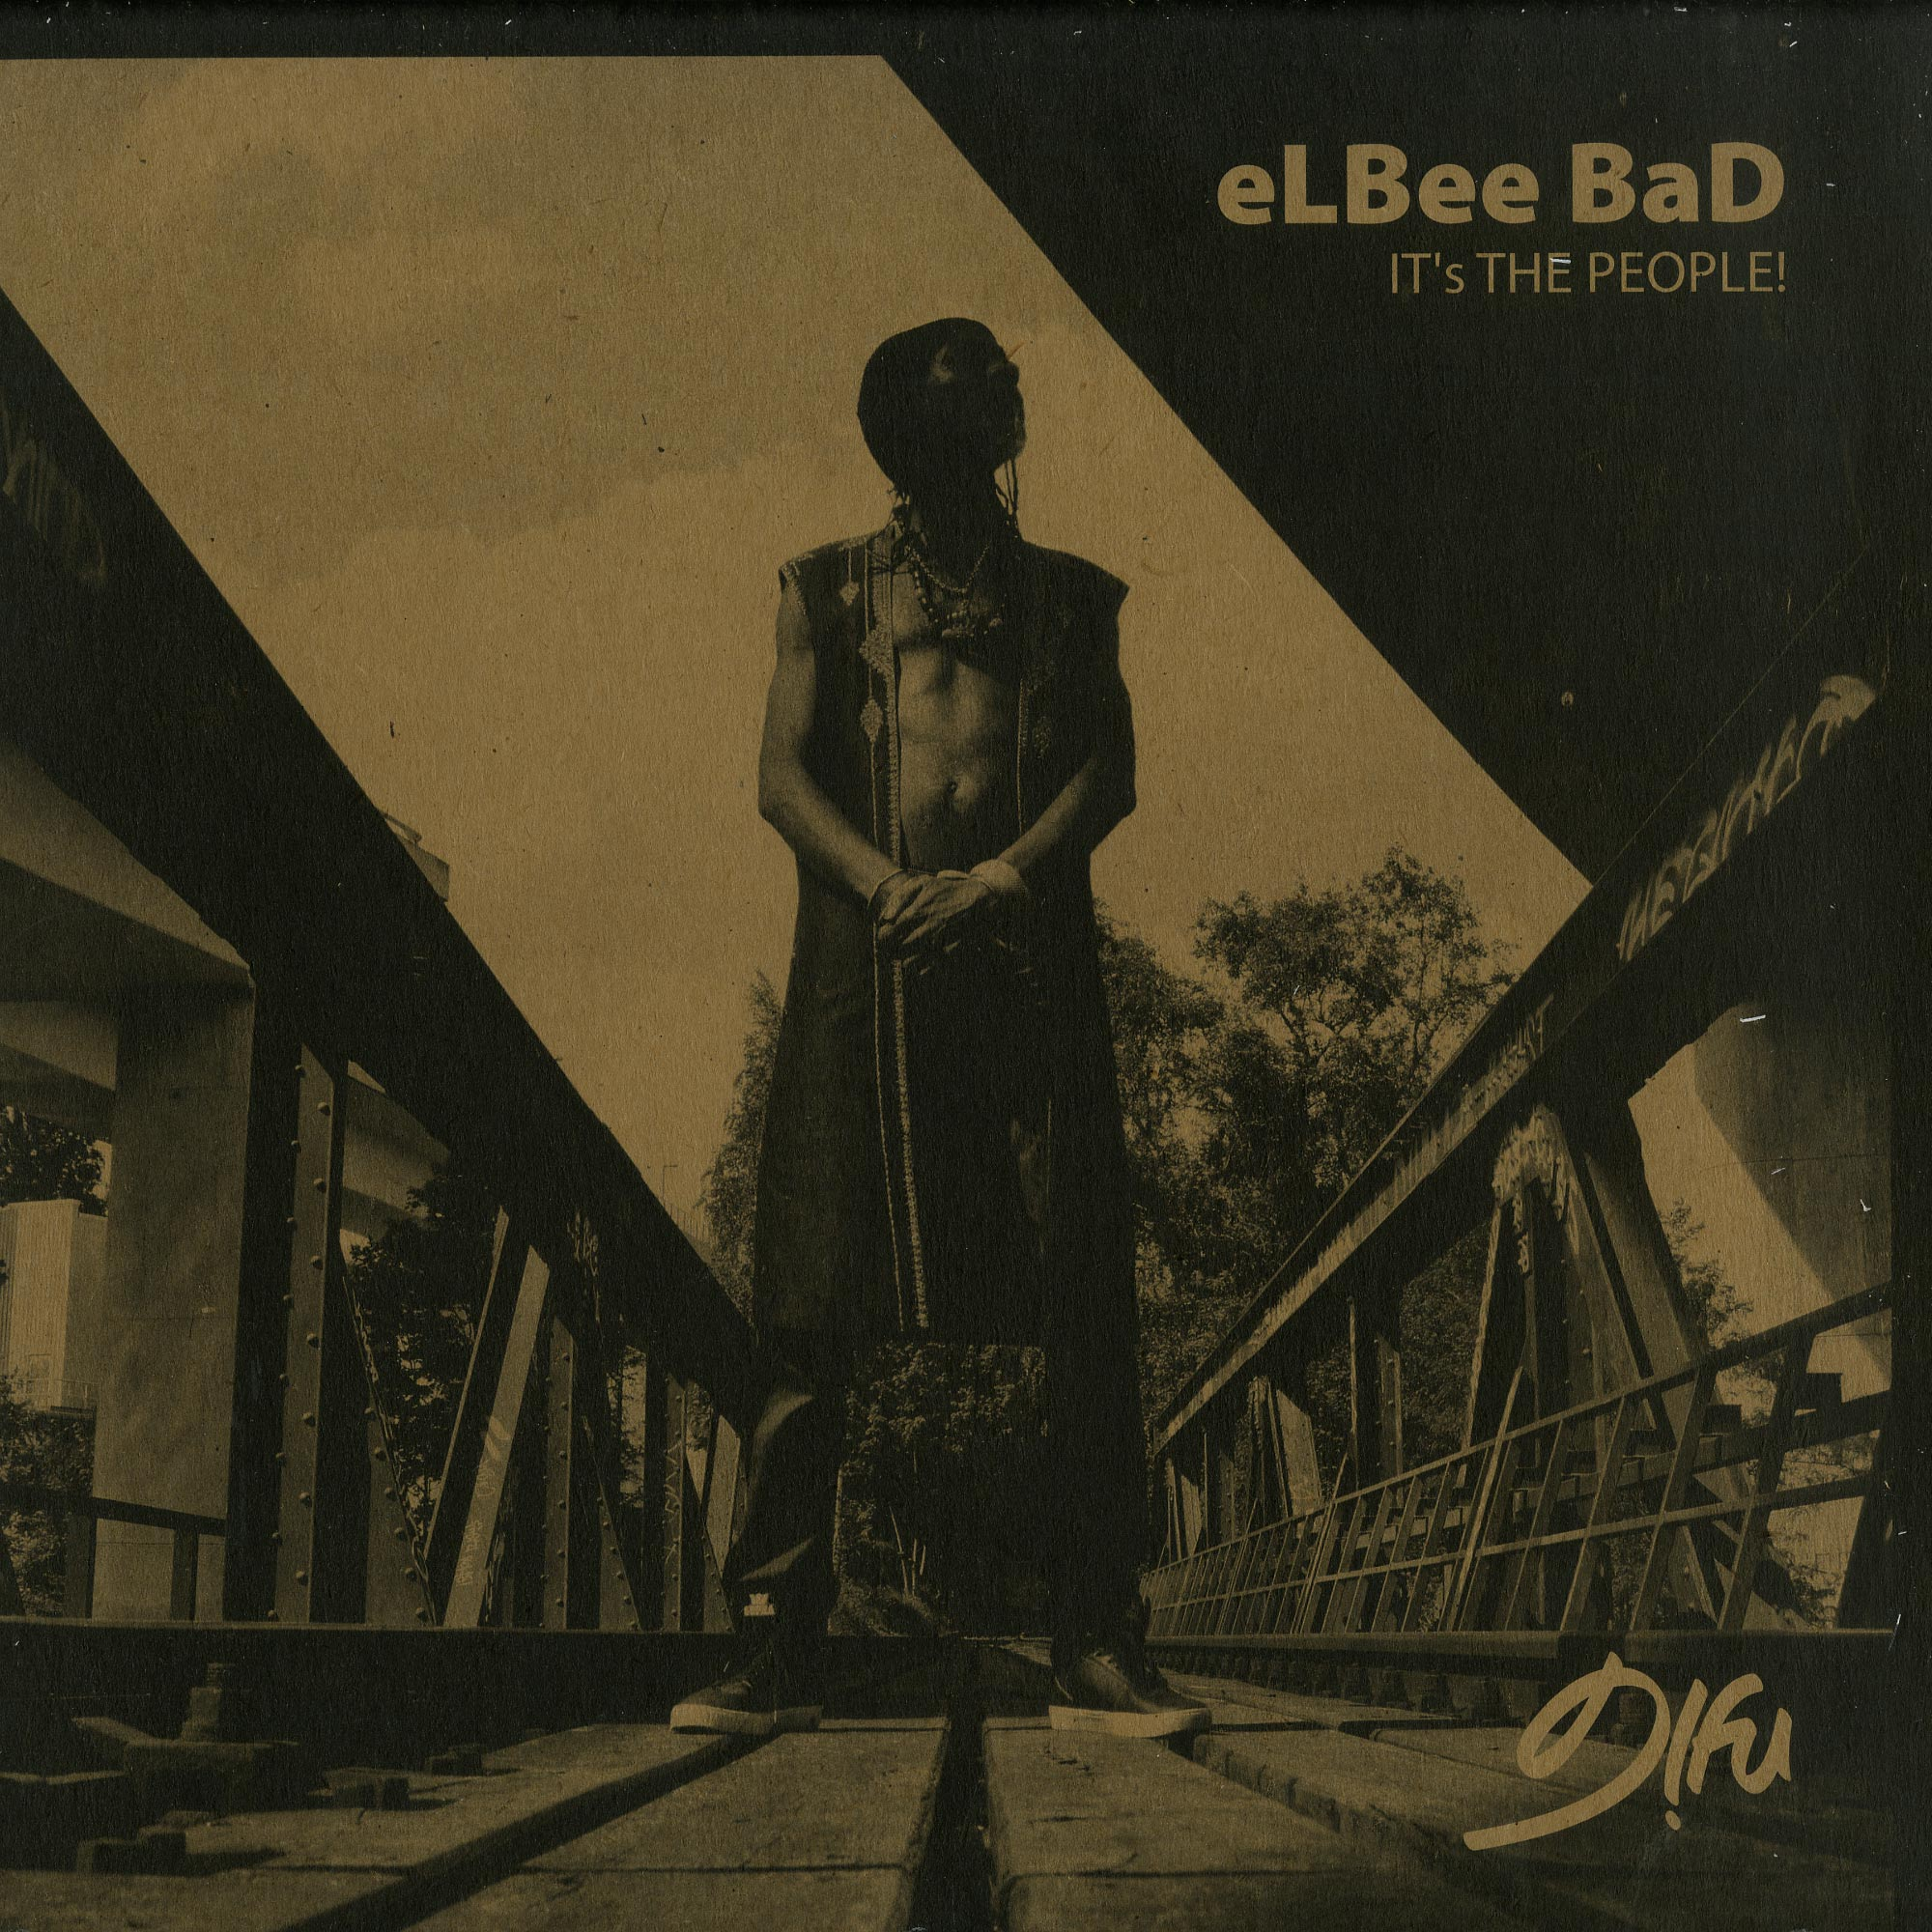 Elbee Bad - ITS THE PEOPLE